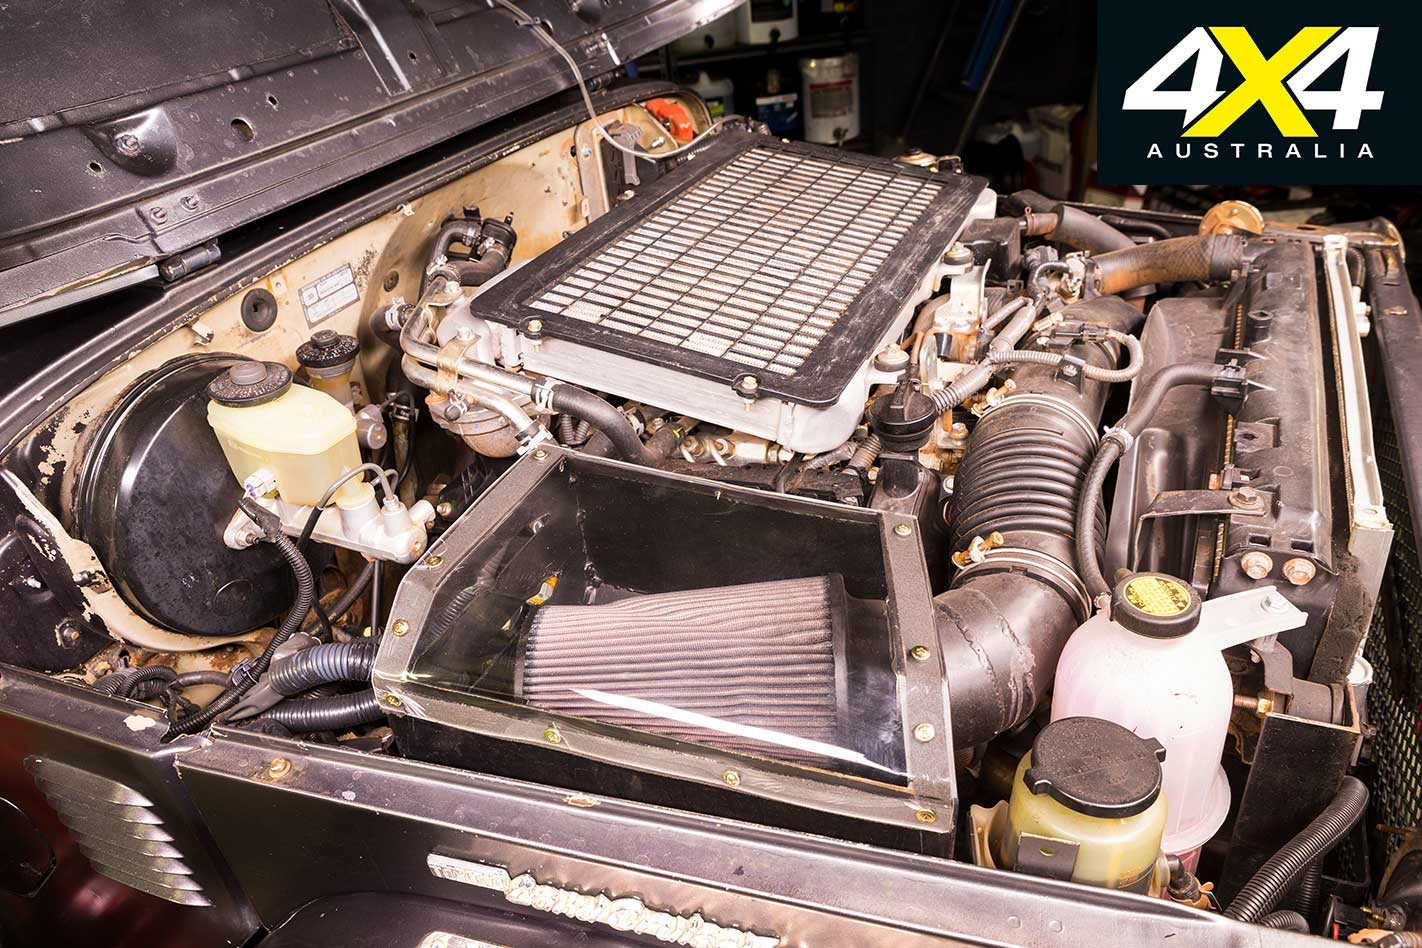 Custom Toyota Land Cruiser Bj40 Review Engine The Idea Of Transplanting A Modern 4x4s Gearbox Drivetrain And Into What Is Distinctly Shorter Much Older Rig Sounds Like Whole Lot